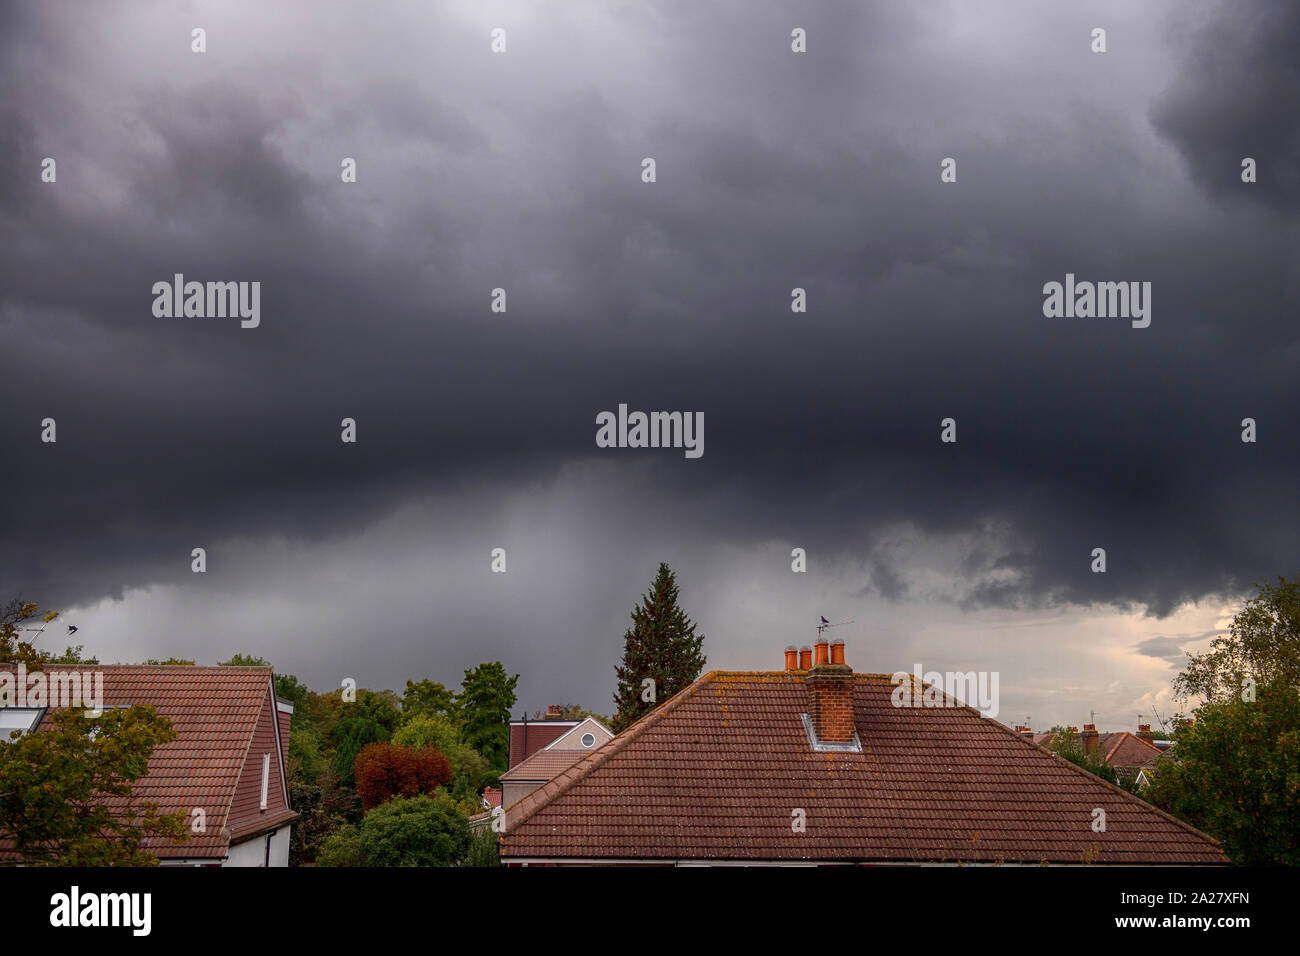 Wimbledon, London, UK. 1st October 2019.Grey storm clouds roll into London from the west bringing lightning and brief torrential rain. Credit: Malcolm Park/Alamy Live News. Stock Photo